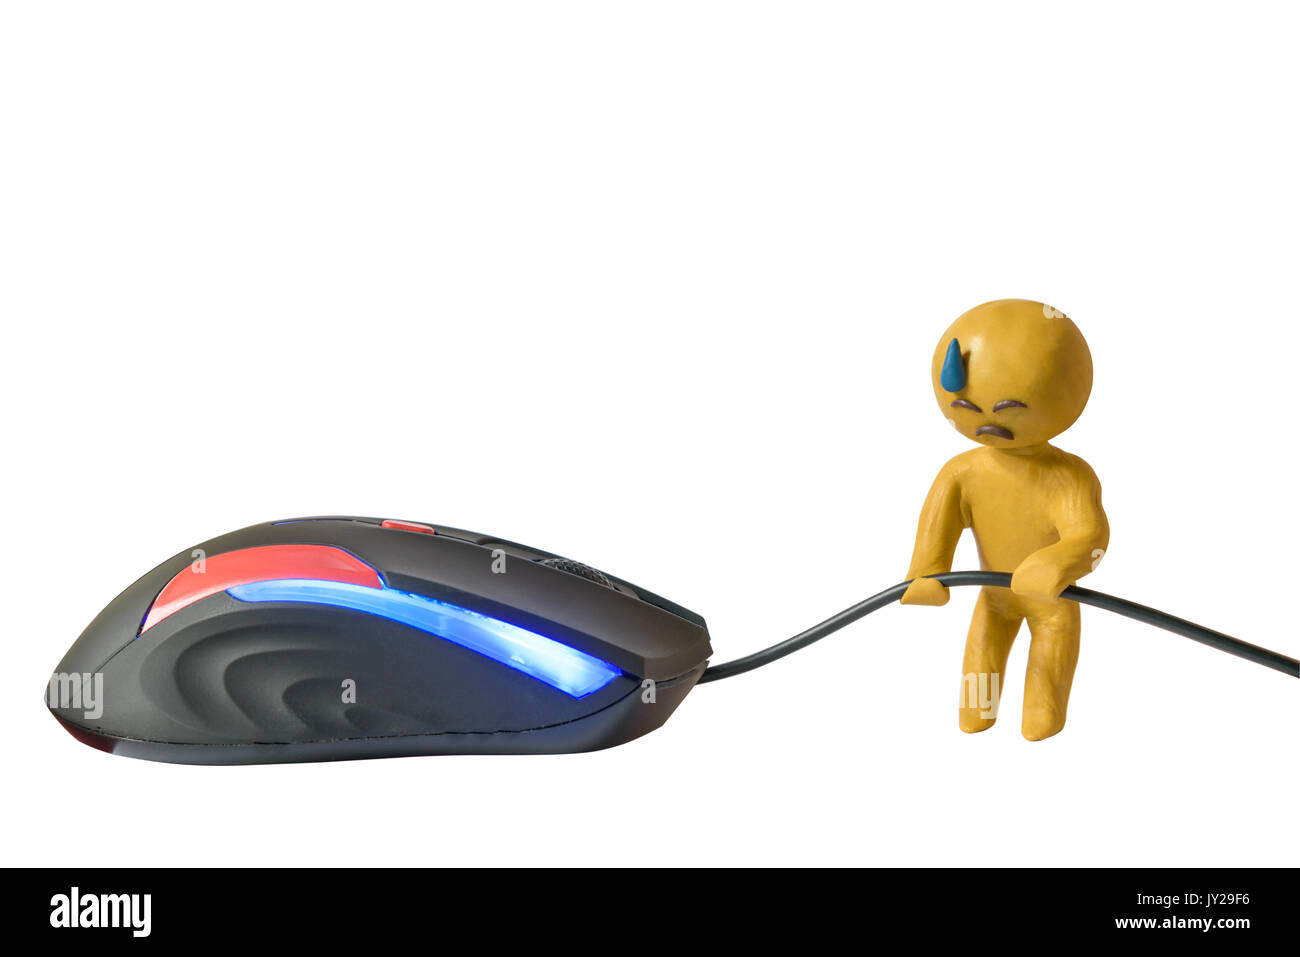 Plasticine human sweat emoji holds wire mouse white background - Stock Image